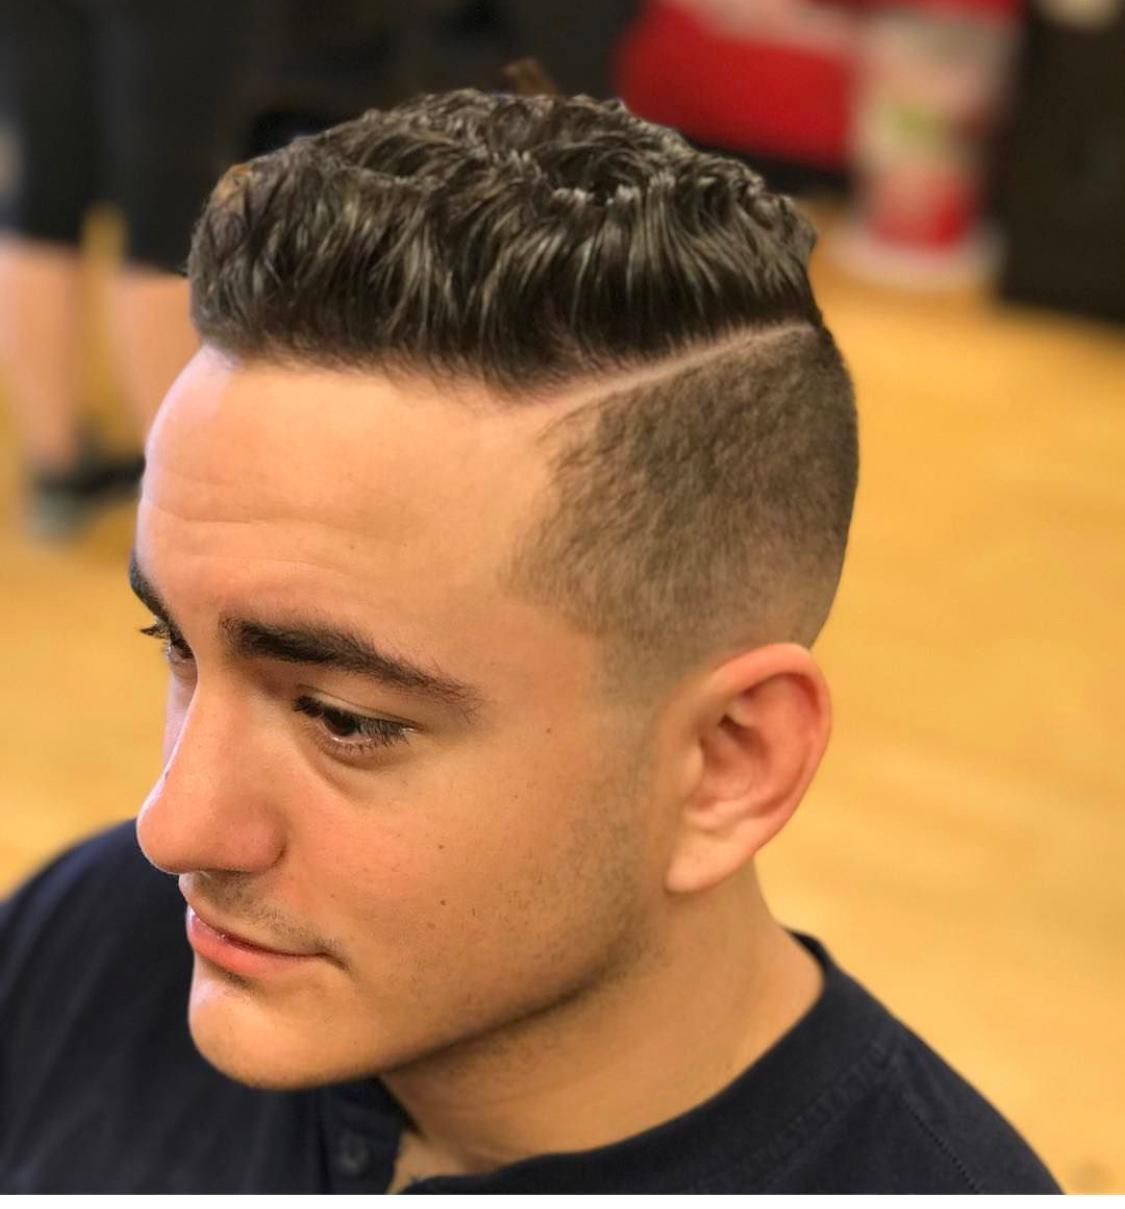 Sport Clips Haircuts of New Port Richey image 33